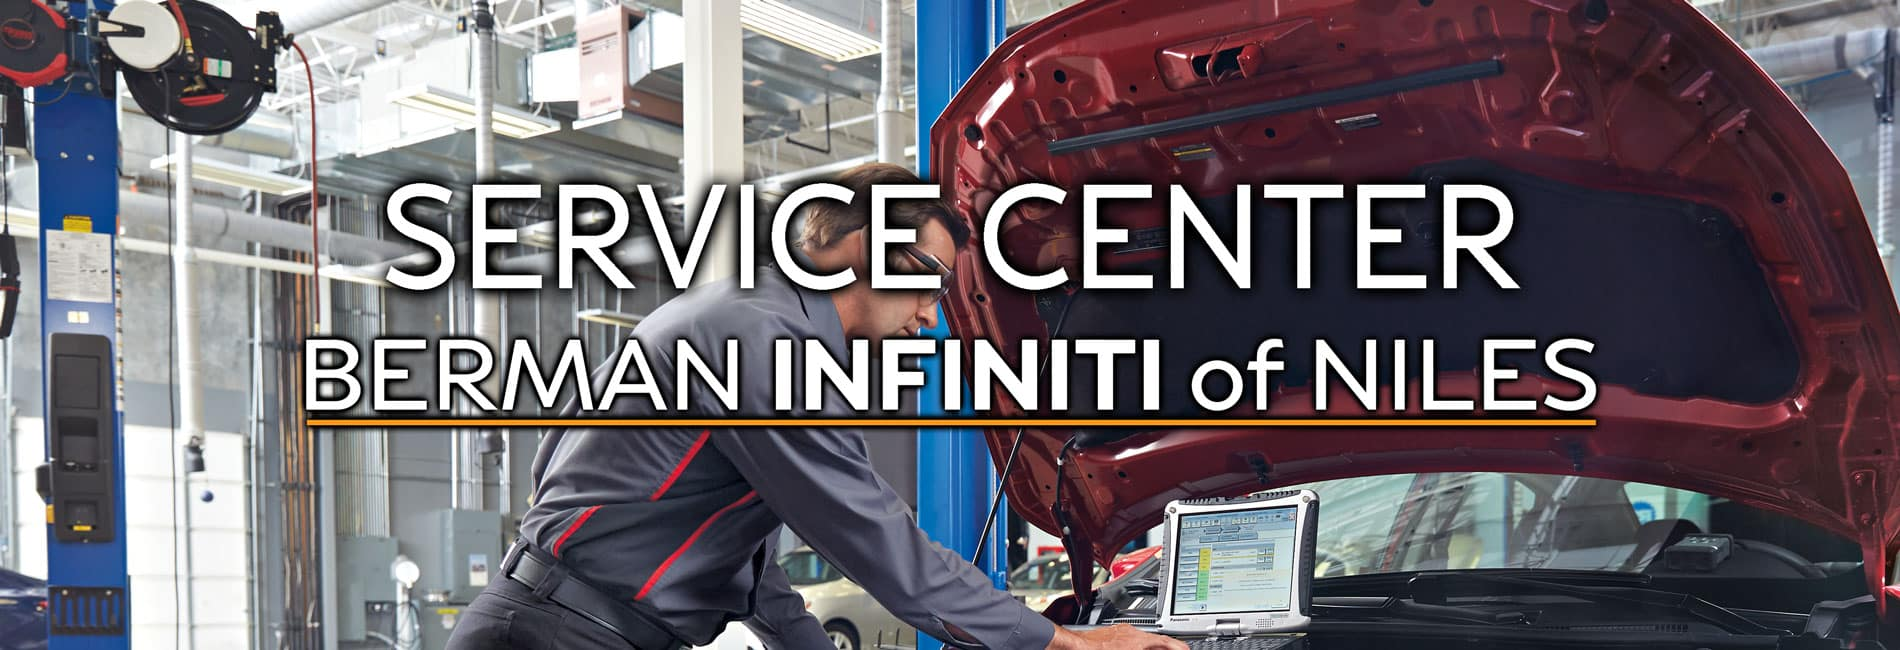 Service Center at Berman INFINITI of Niles